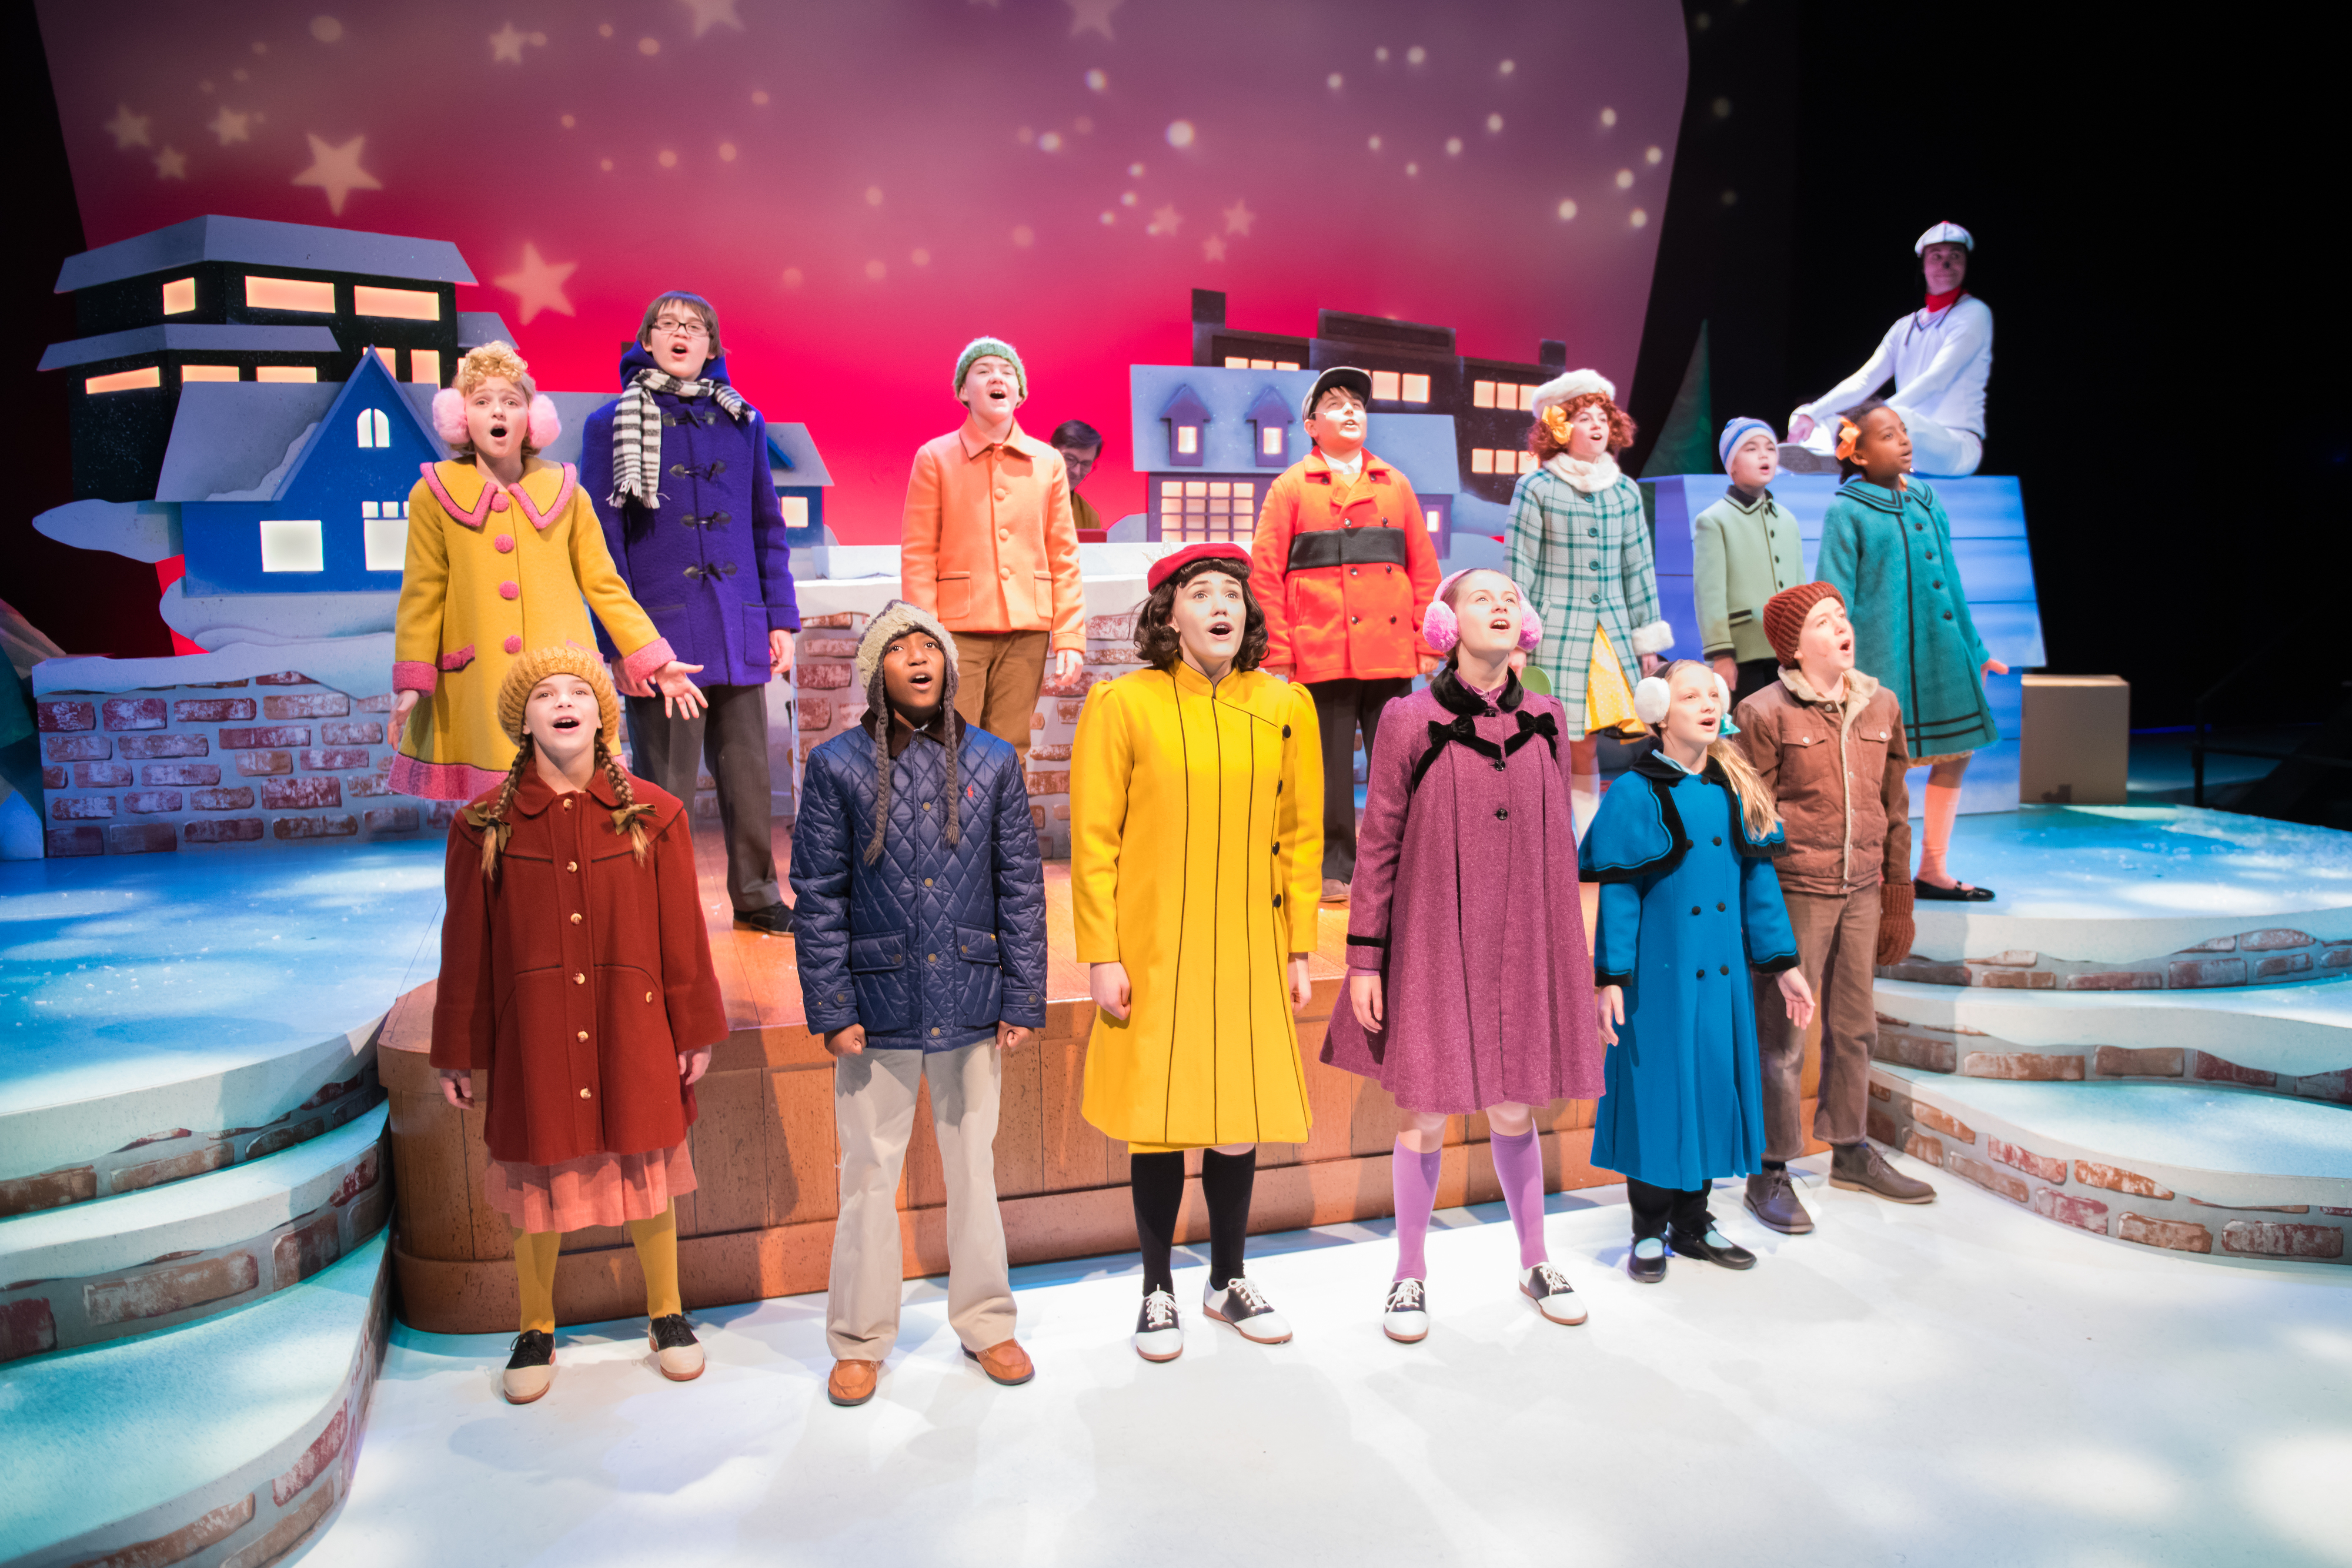 First Stage weaves holiday magic for every age with u201cA Charlie Brown Christmasu201d | Dave Begel On Theater & First Stage weaves holiday magic for every age with u201cA Charlie Brown ...